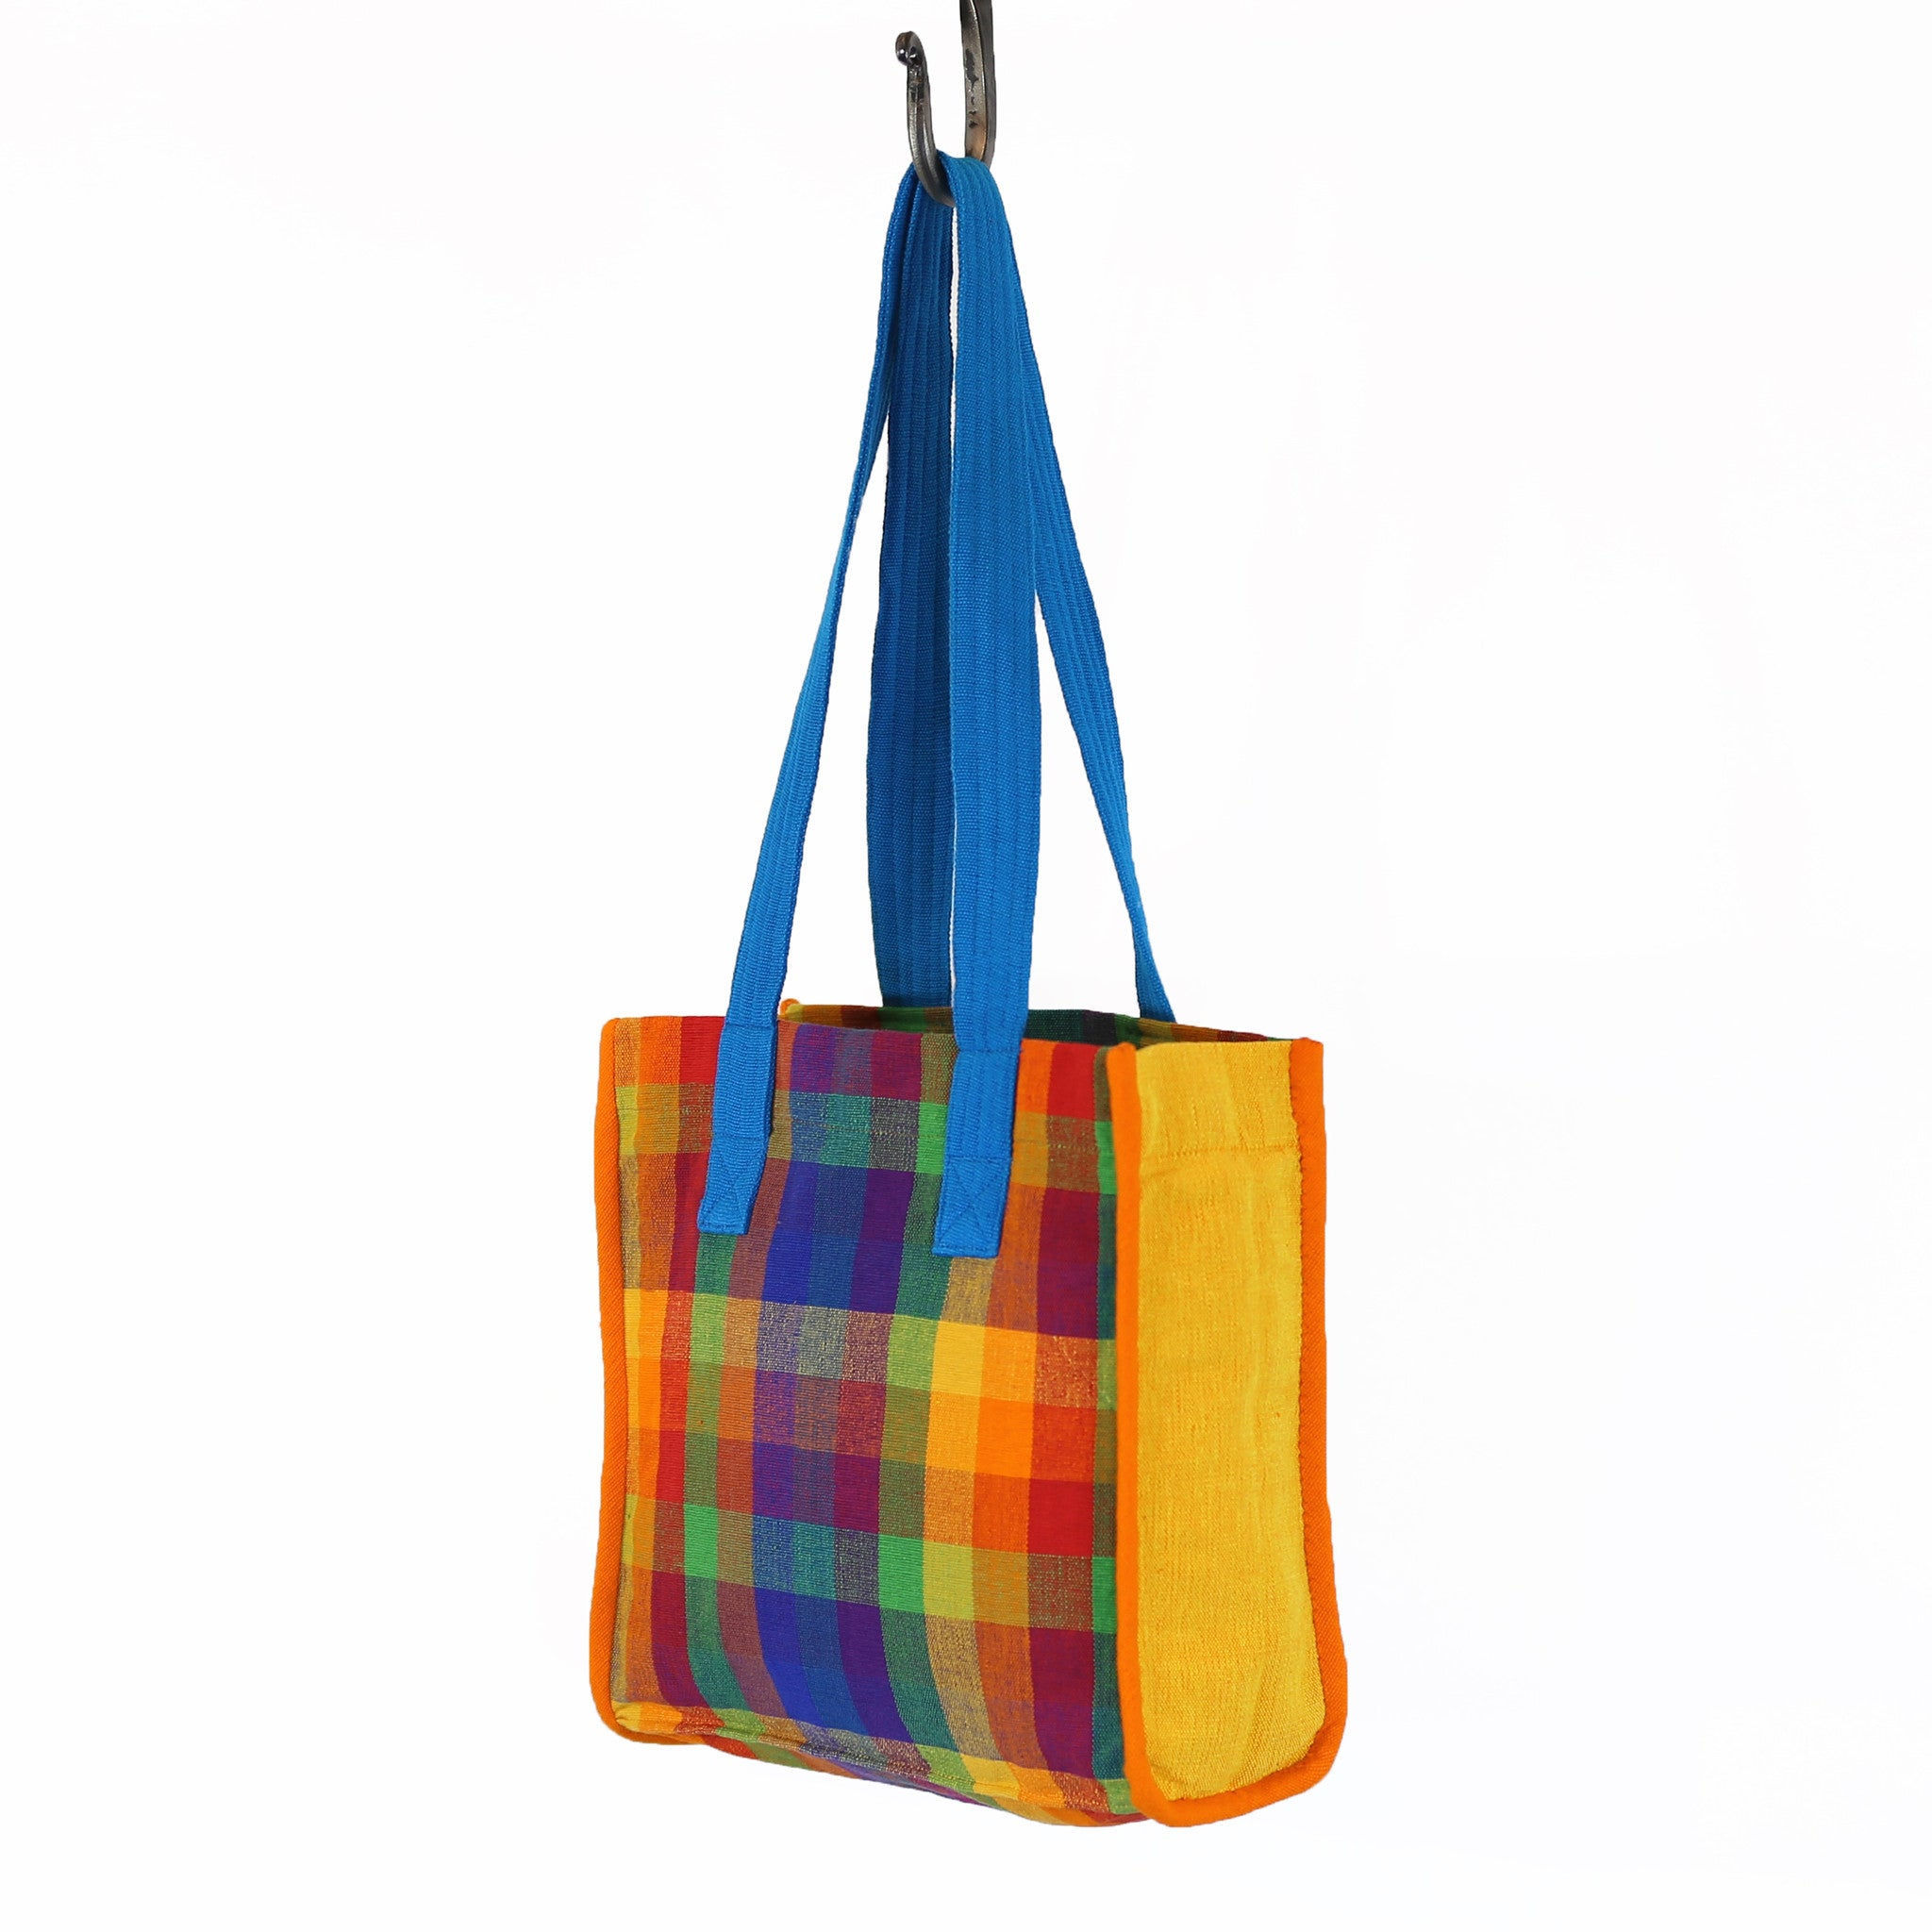 The Easy Breezy Tote - Carousel fabric shown